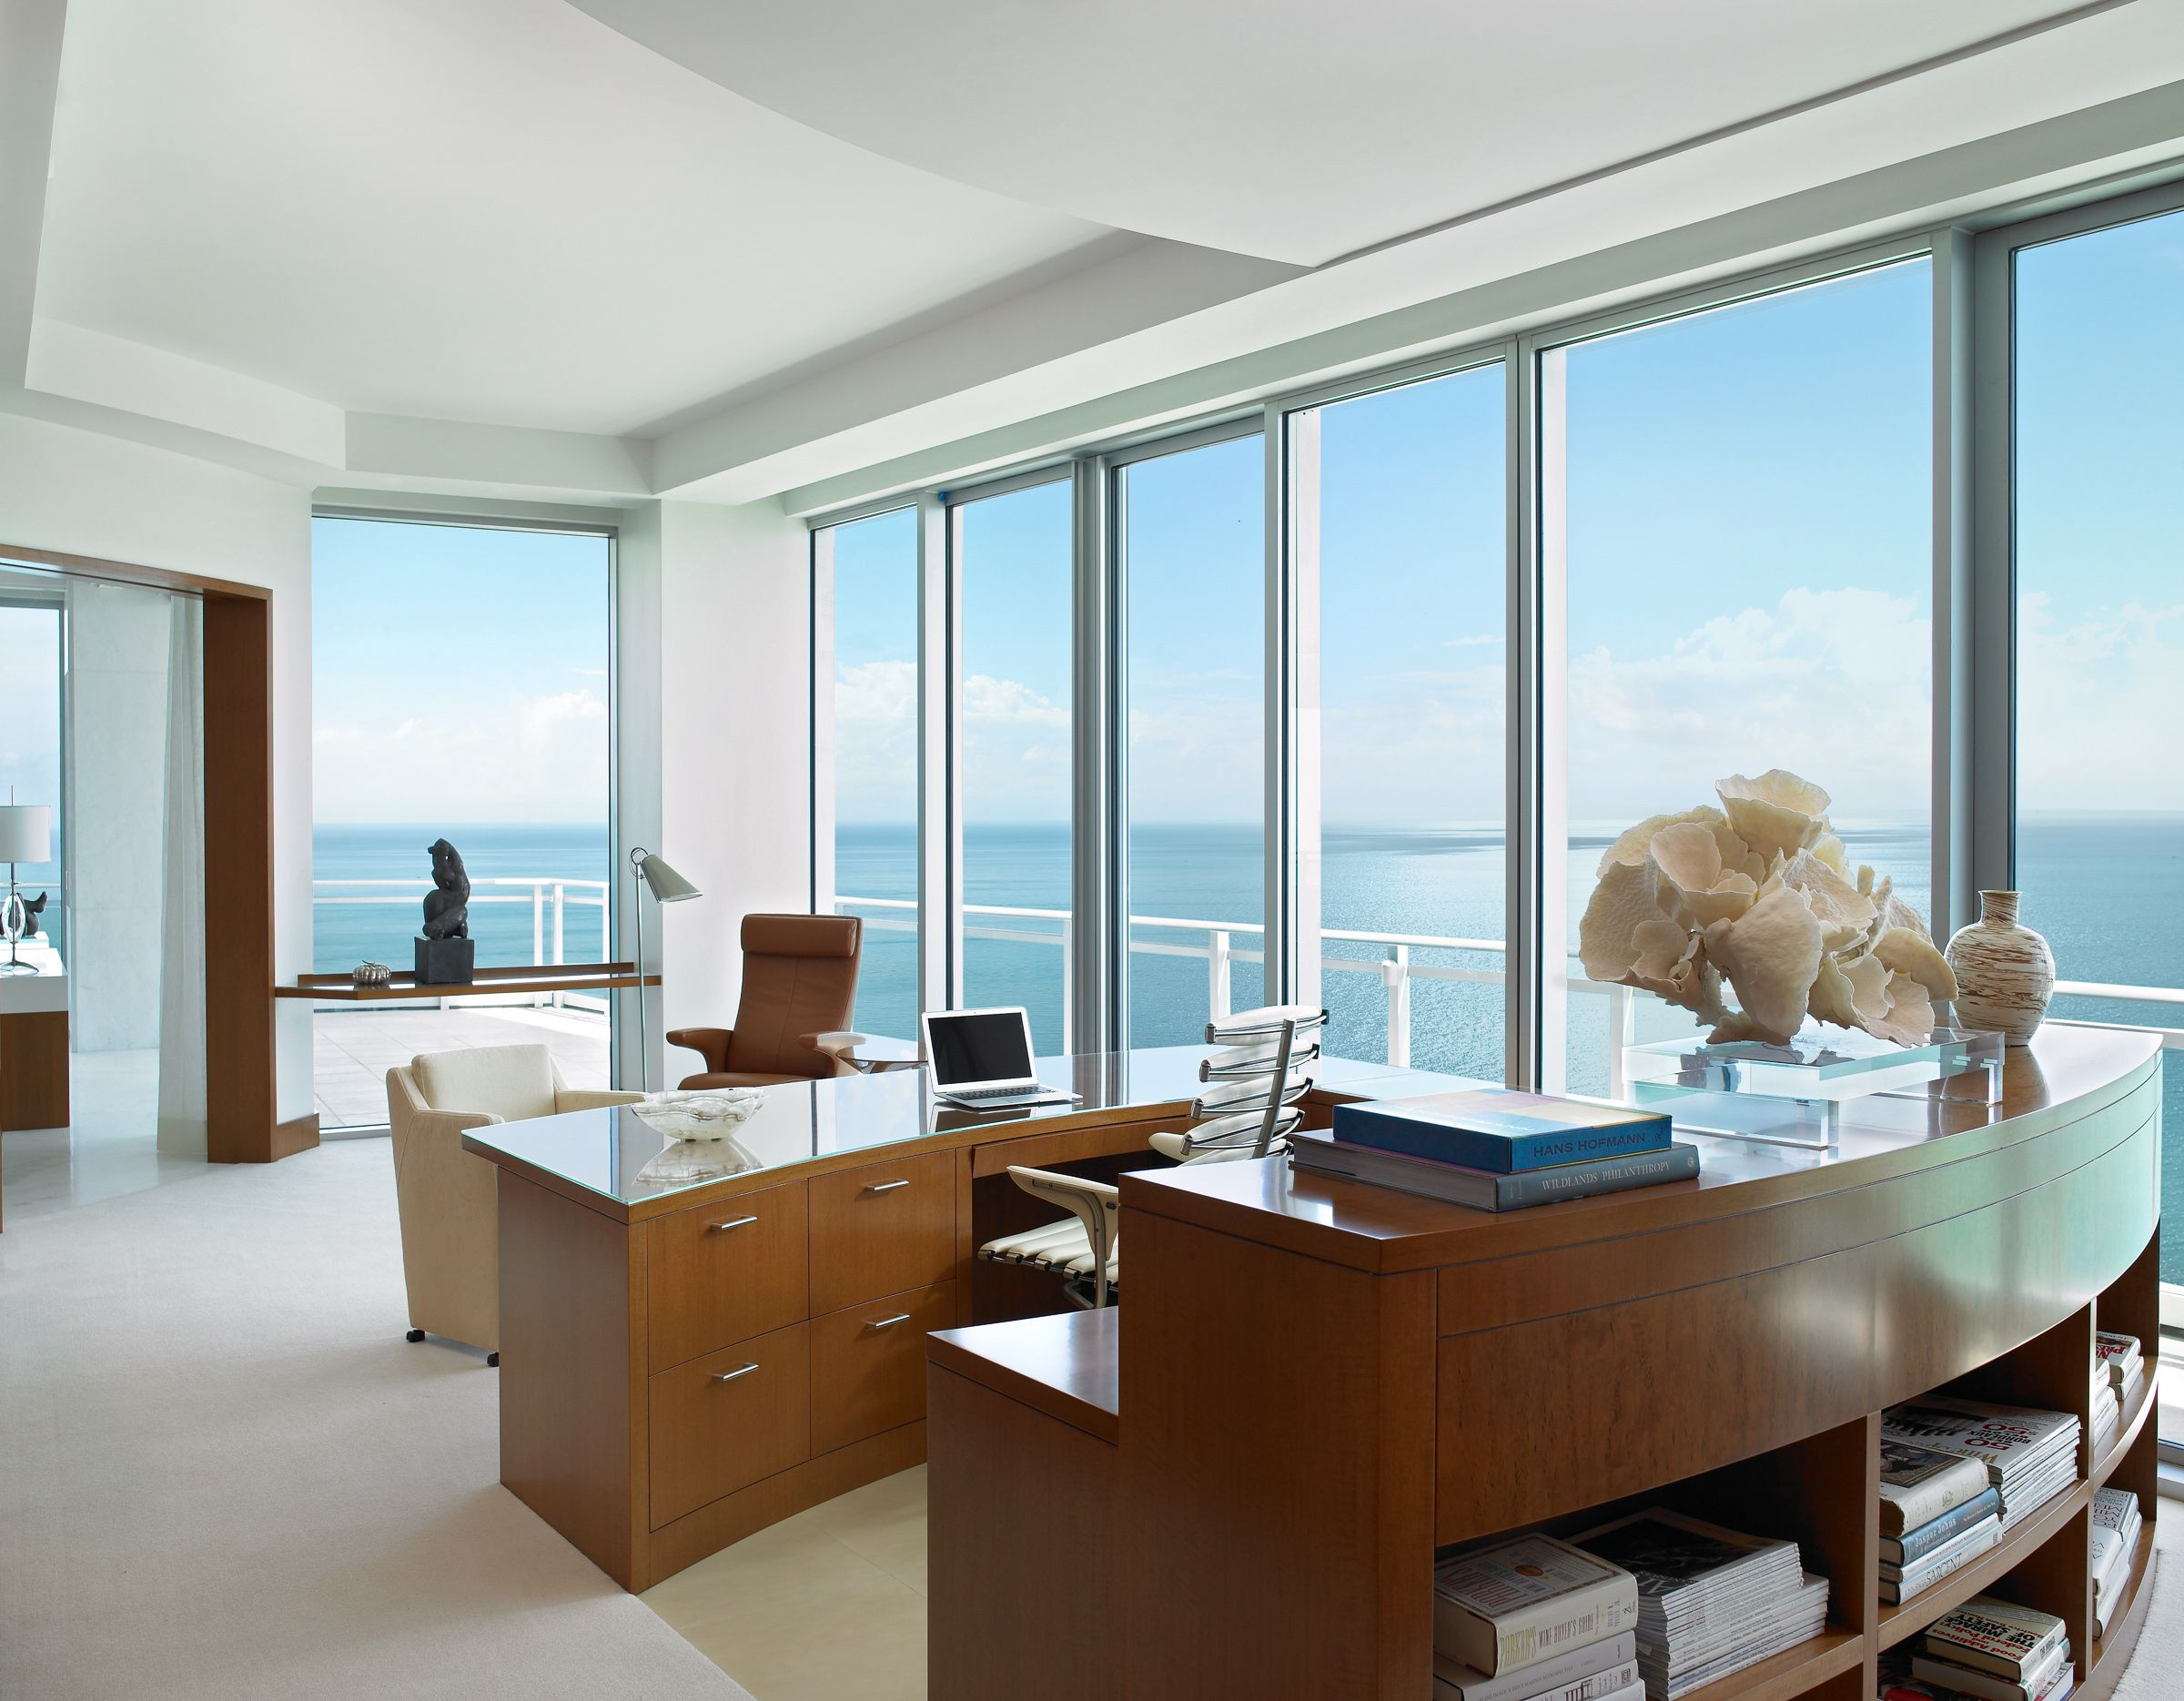 The Oceanfront Home Office Is Complete With Every Detail Designed